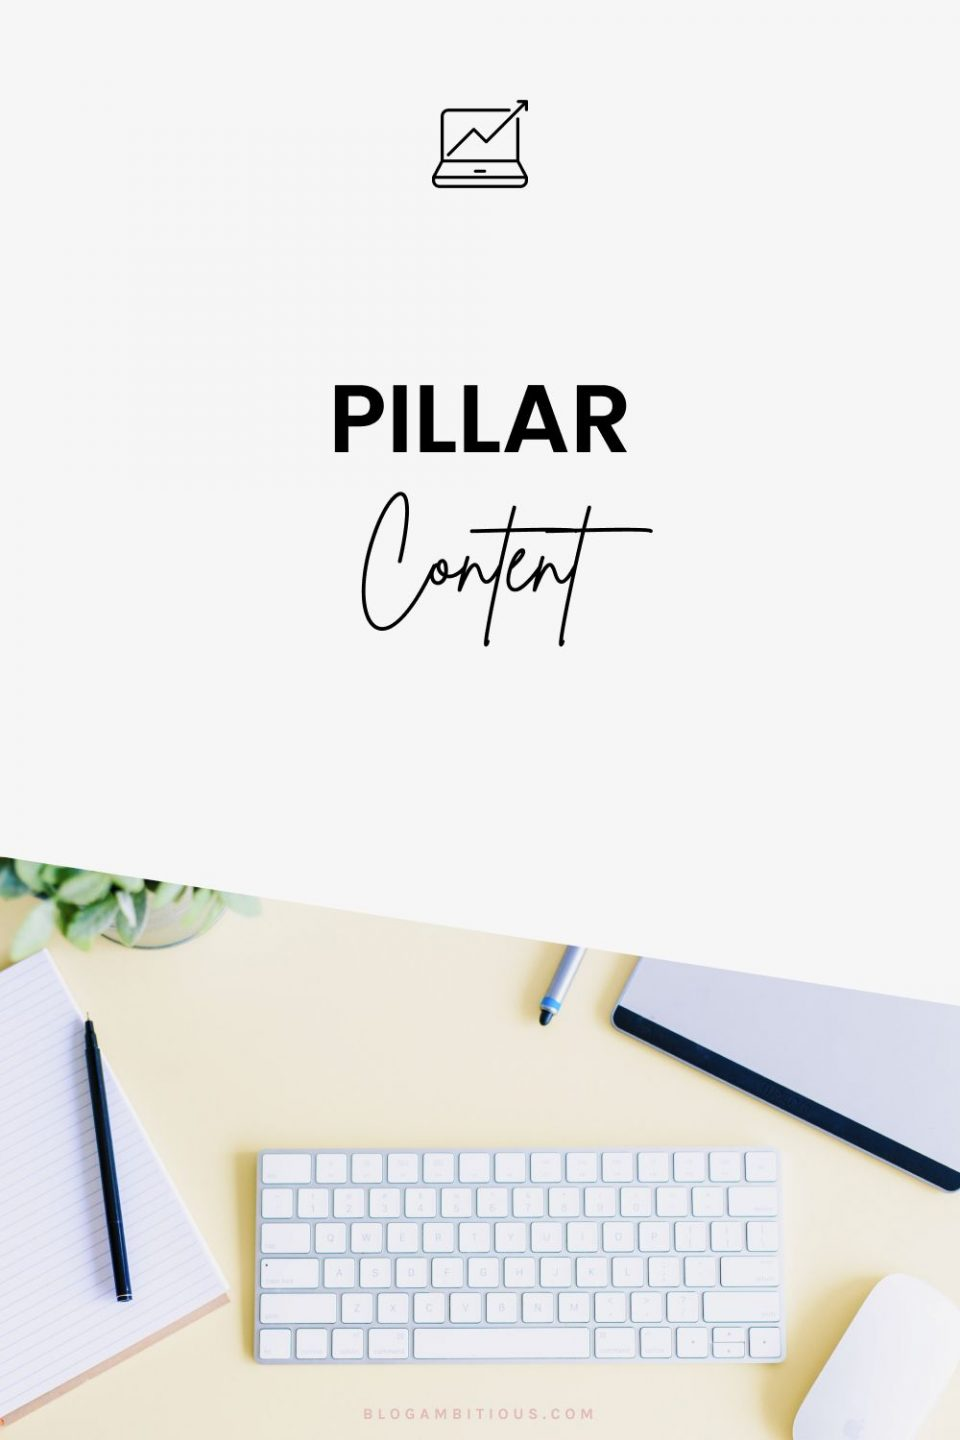 How Pillar Content Tripled My Google Traffic in 6 Months